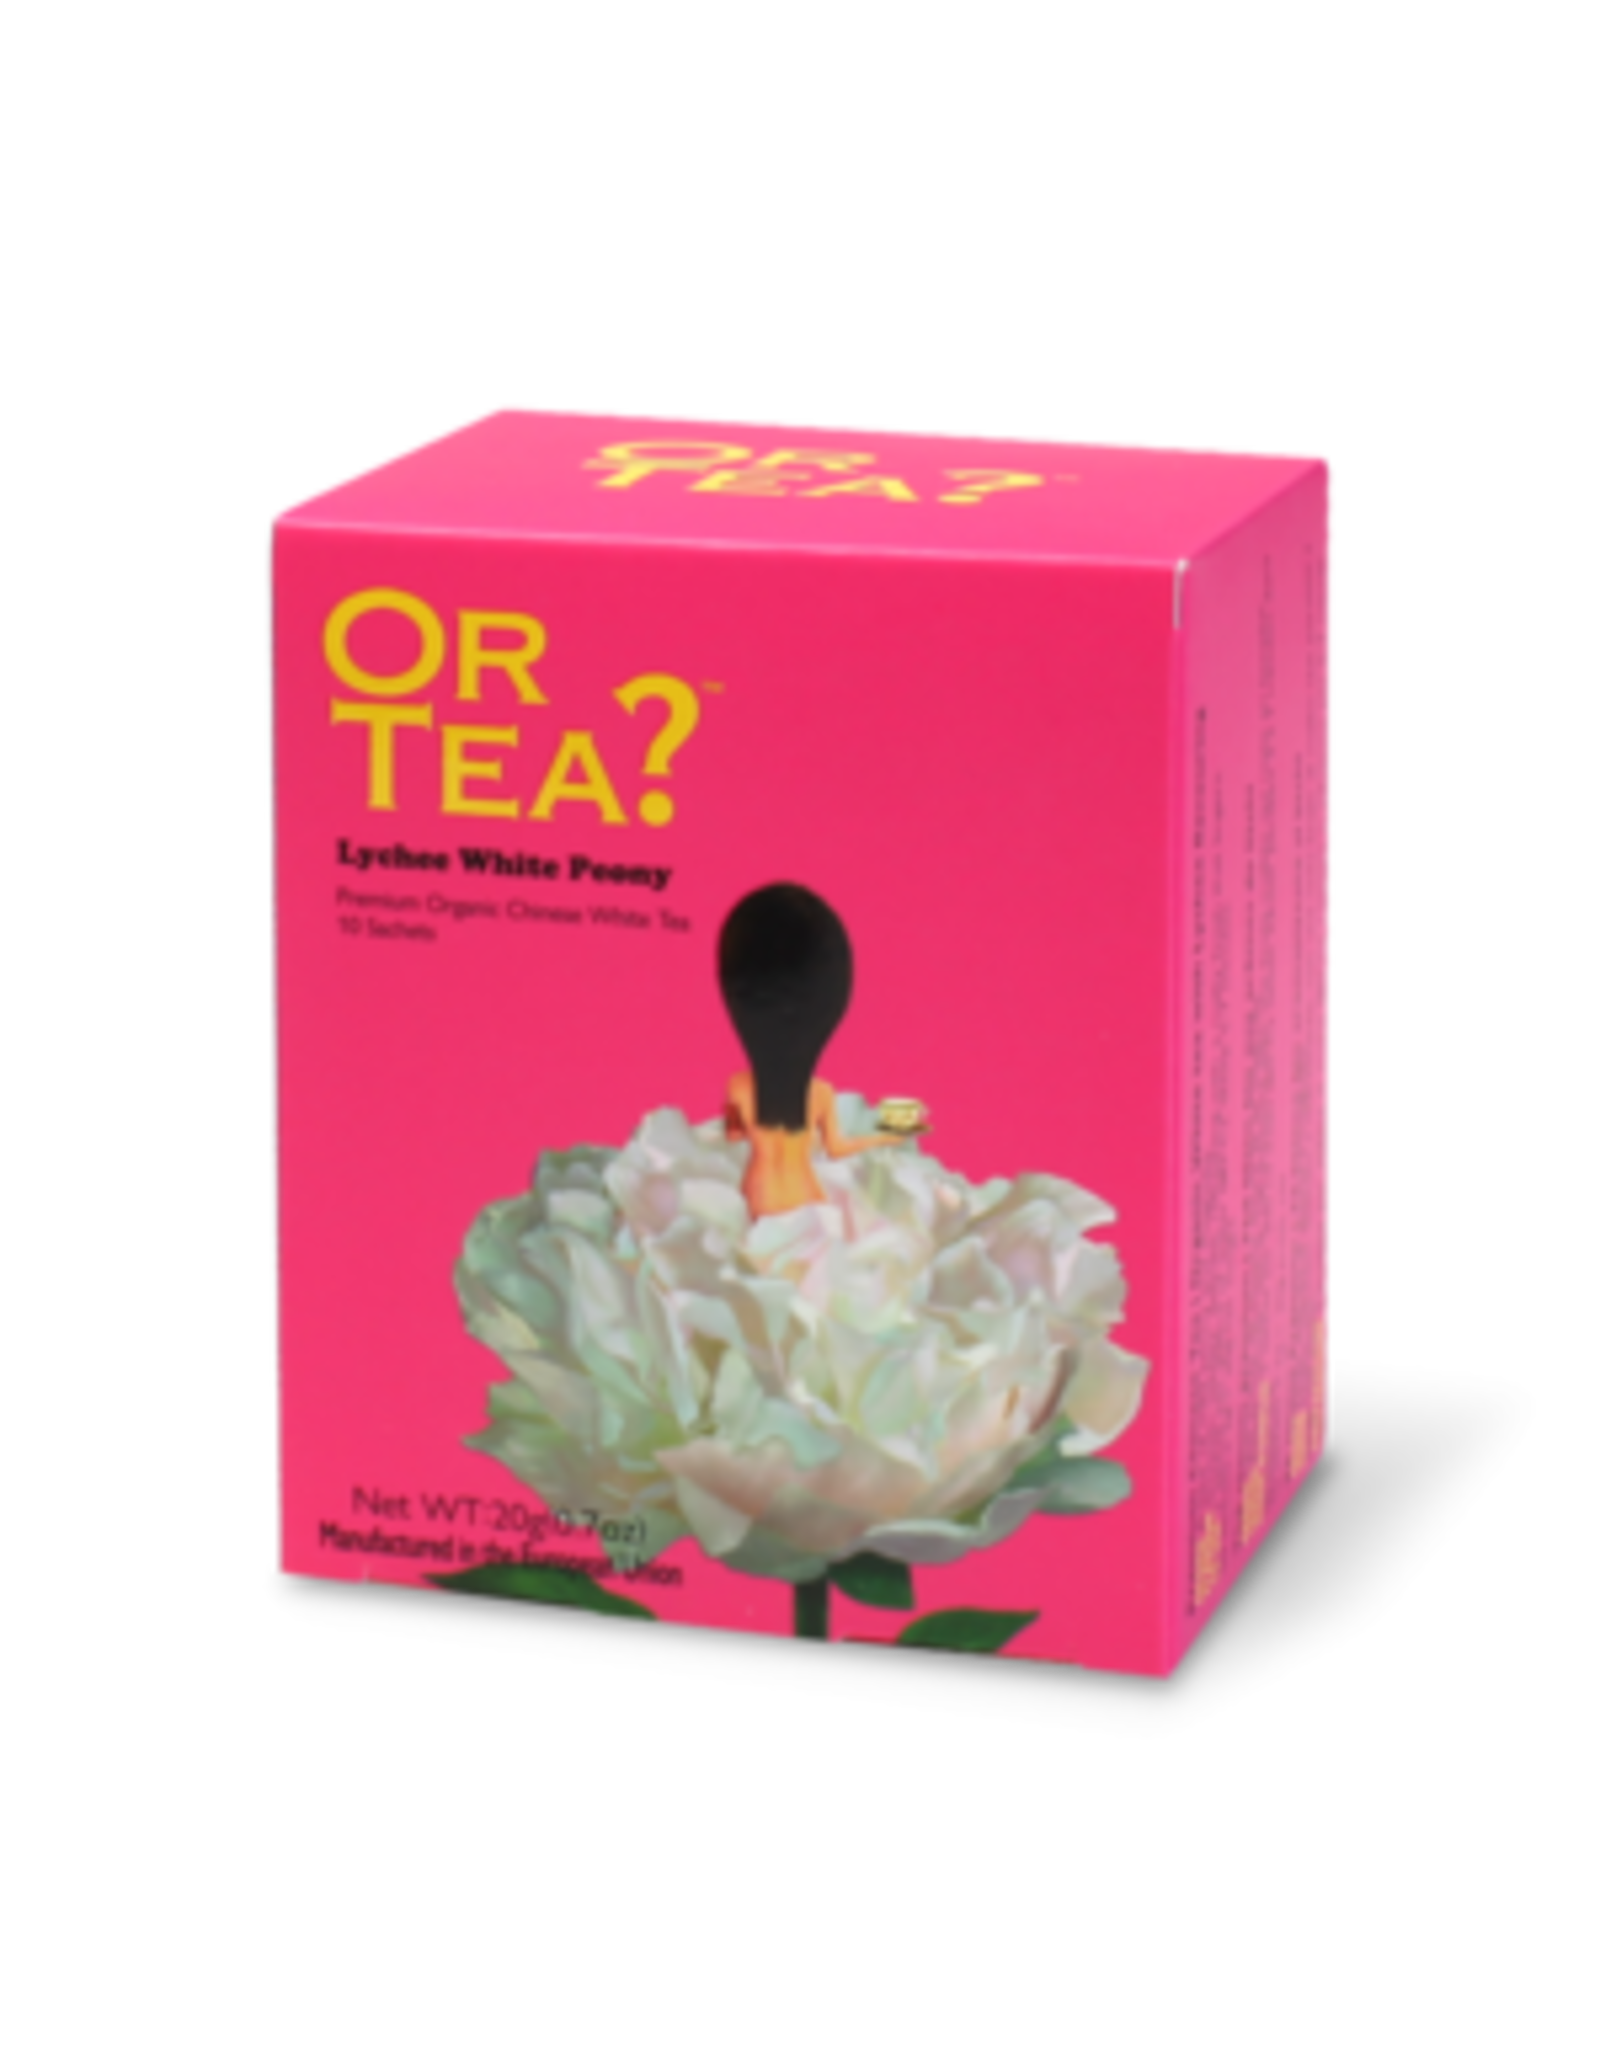 Or Tea? Lychee White Peony BIO - Thebuiltjes - 10 st